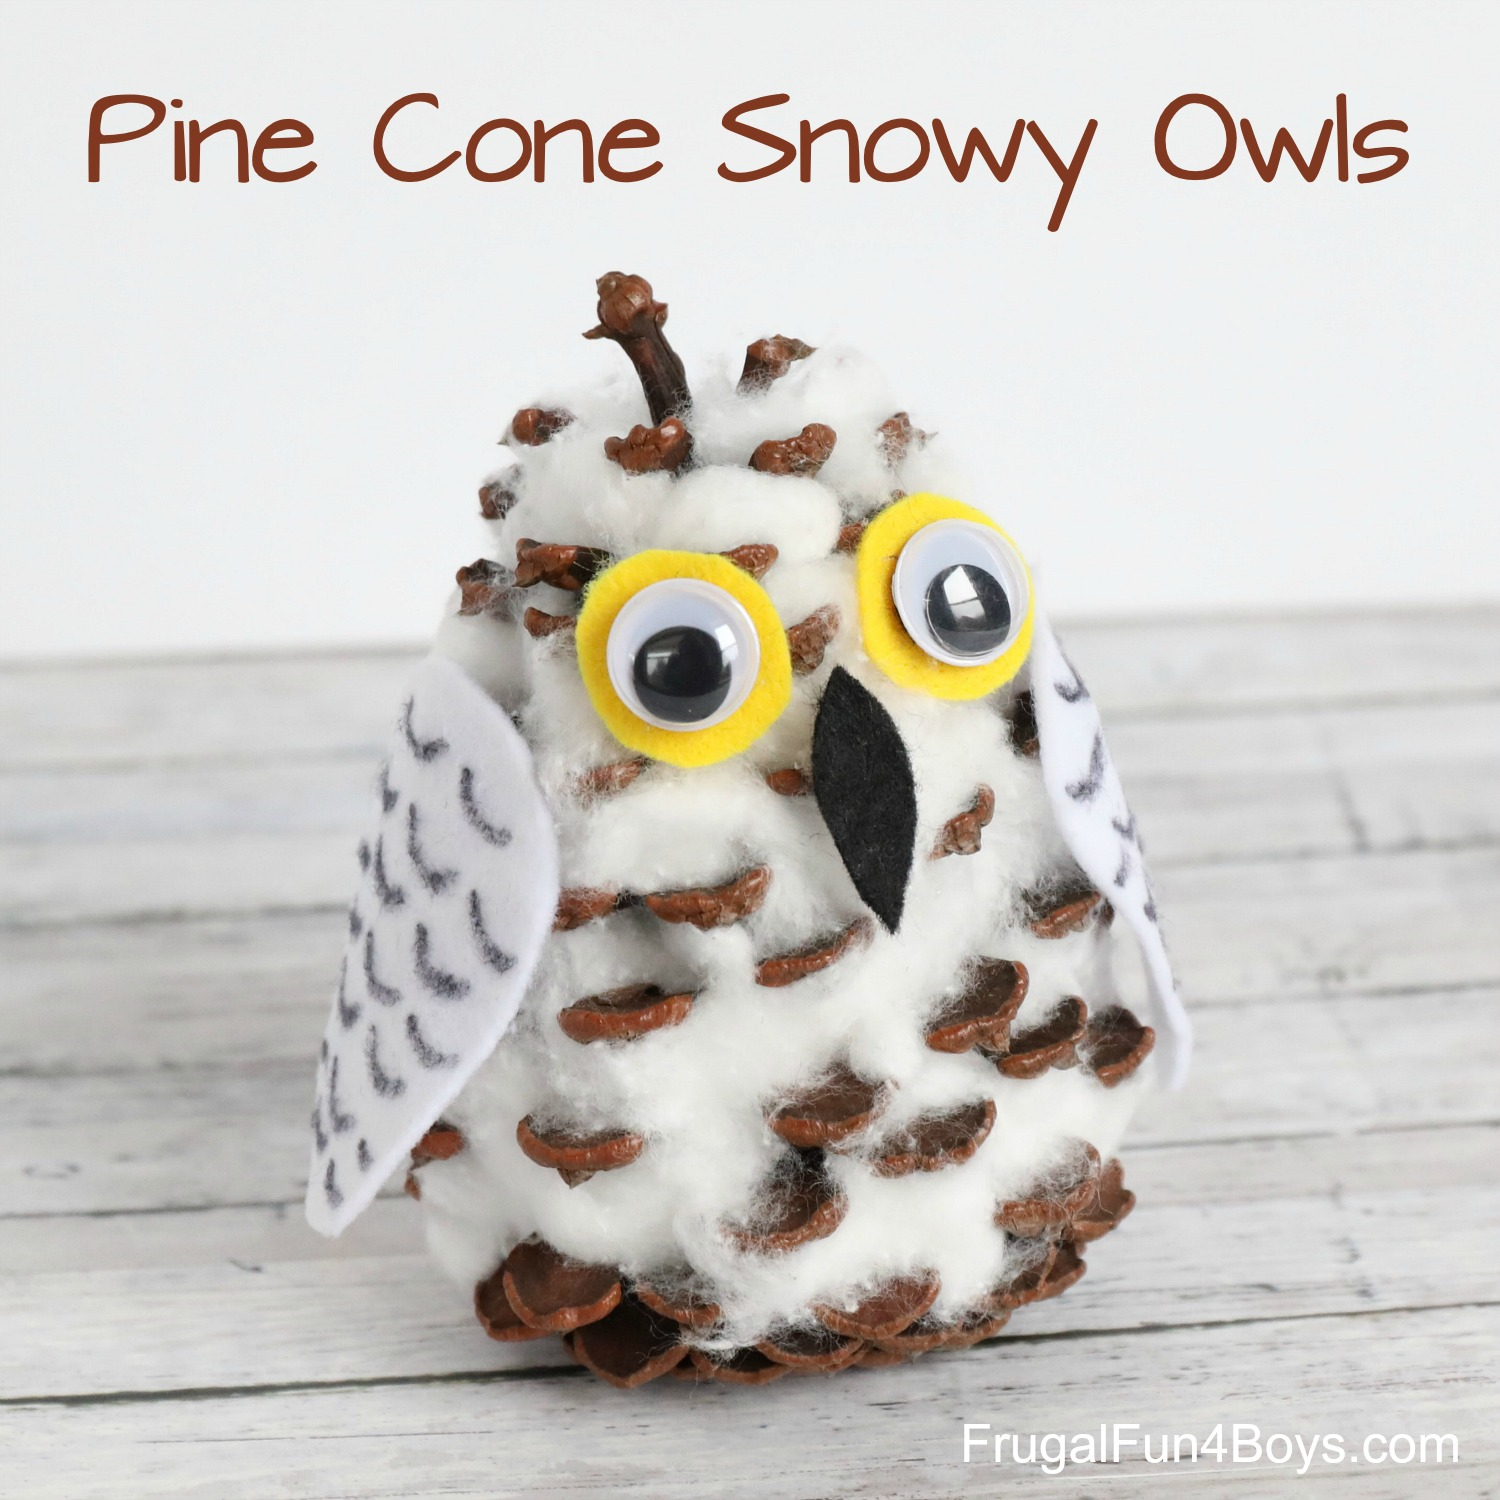 Pine Cone Snowy Owl Craft for Kids